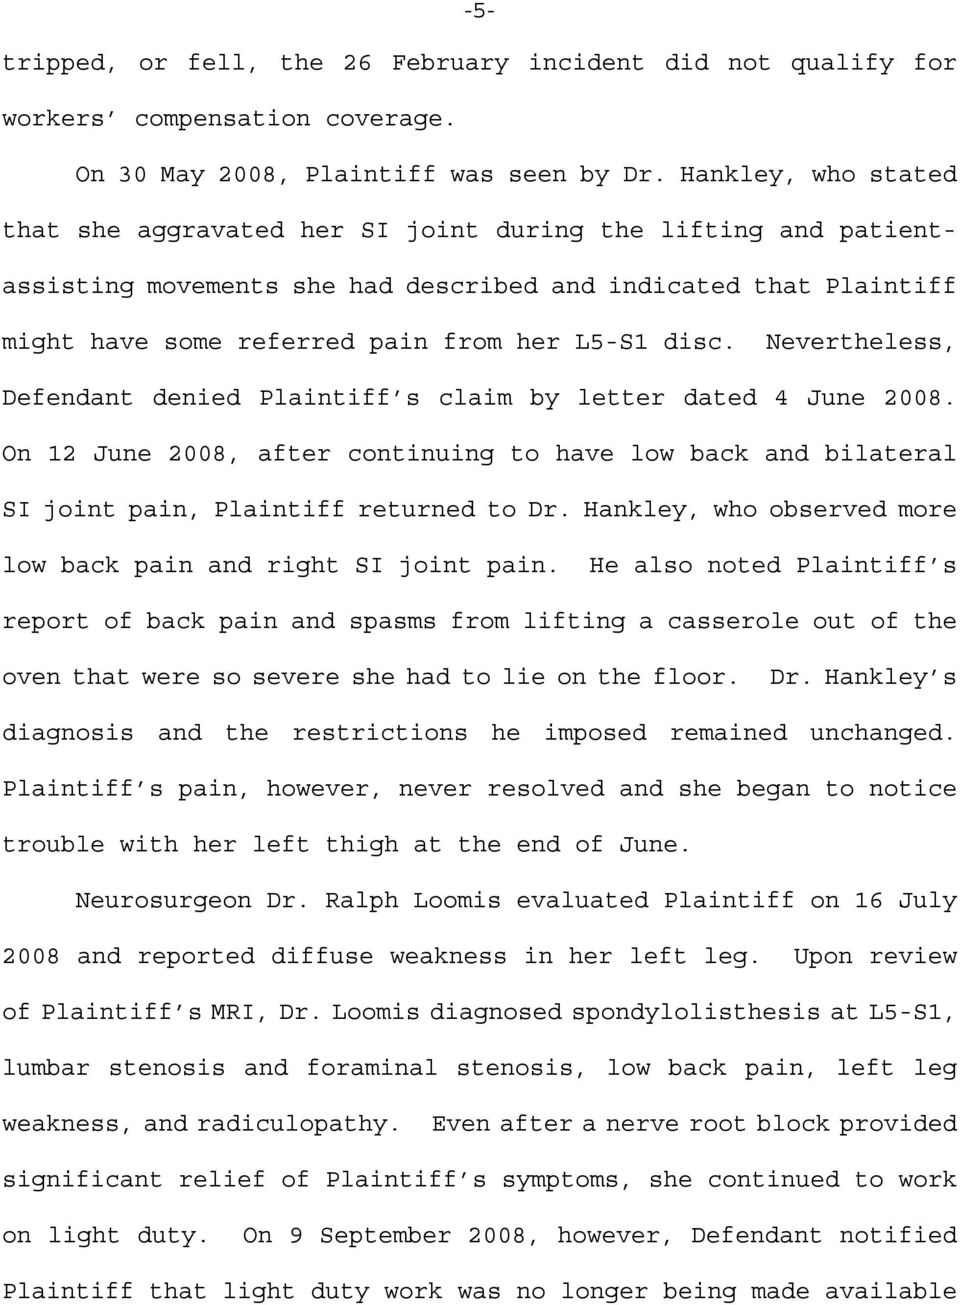 Nevertheless, Defendant denied Plaintiff s claim by letter dated 4 June 2008. On 12 June 2008, after continuing to have low back and bilateral SI joint pain, Plaintiff returned to Dr.